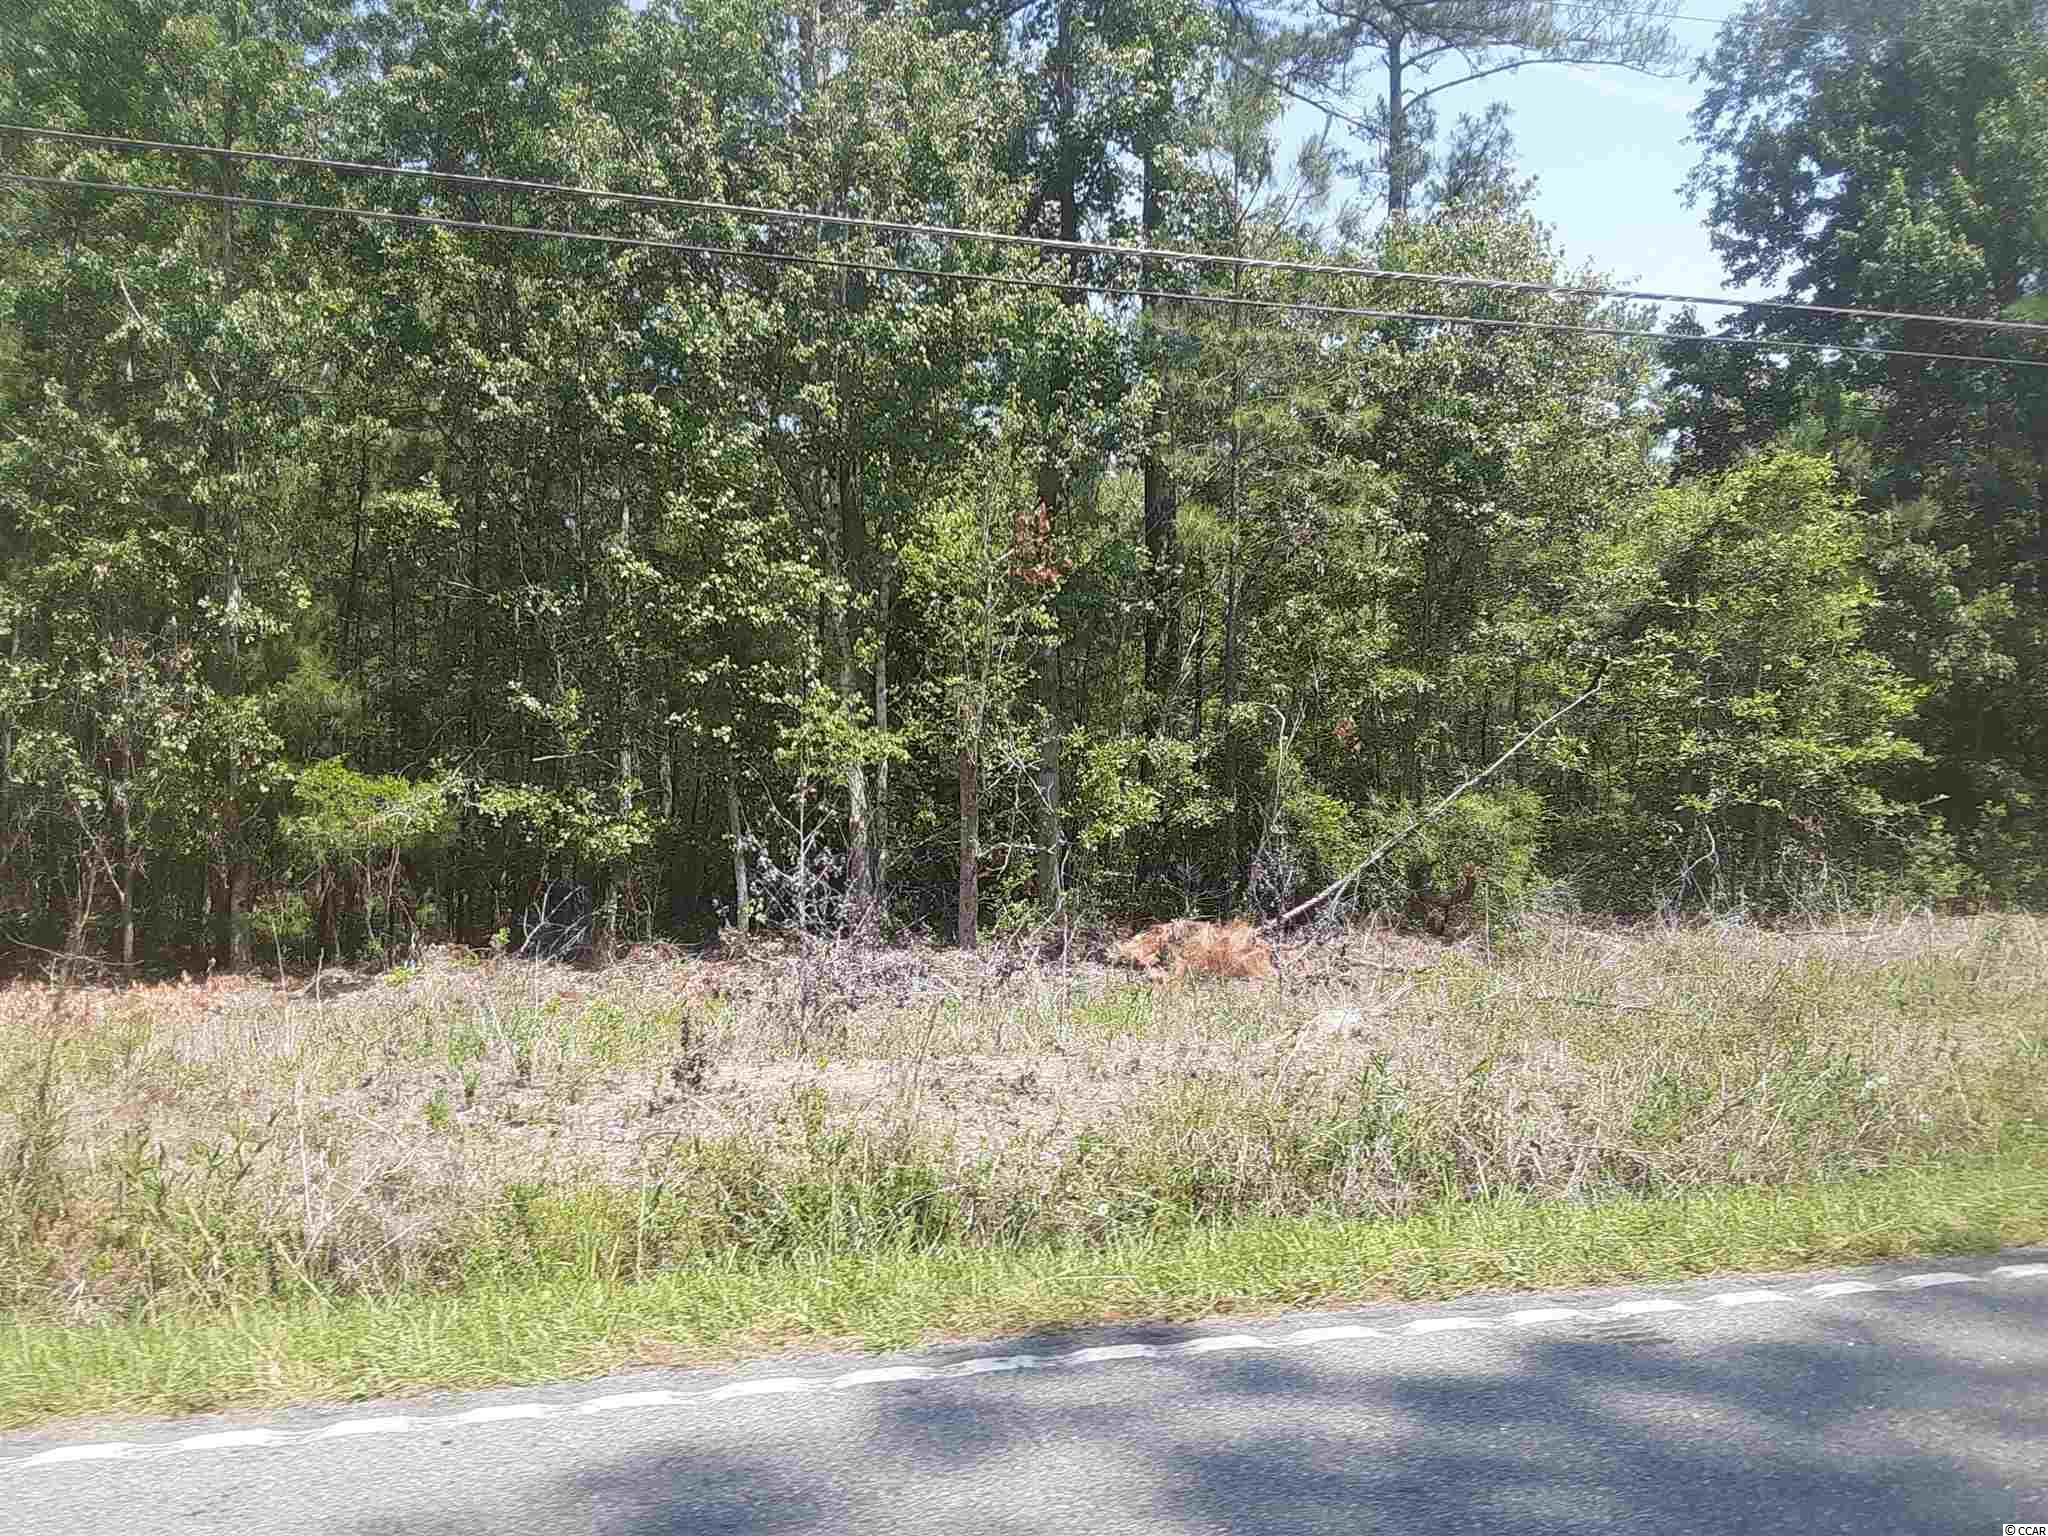 21.7 acres ready to be developed or use as a home site. 1085 feet of road frontage. Measurements are approximate and not guaranteed. Buyer is responsible for verification.